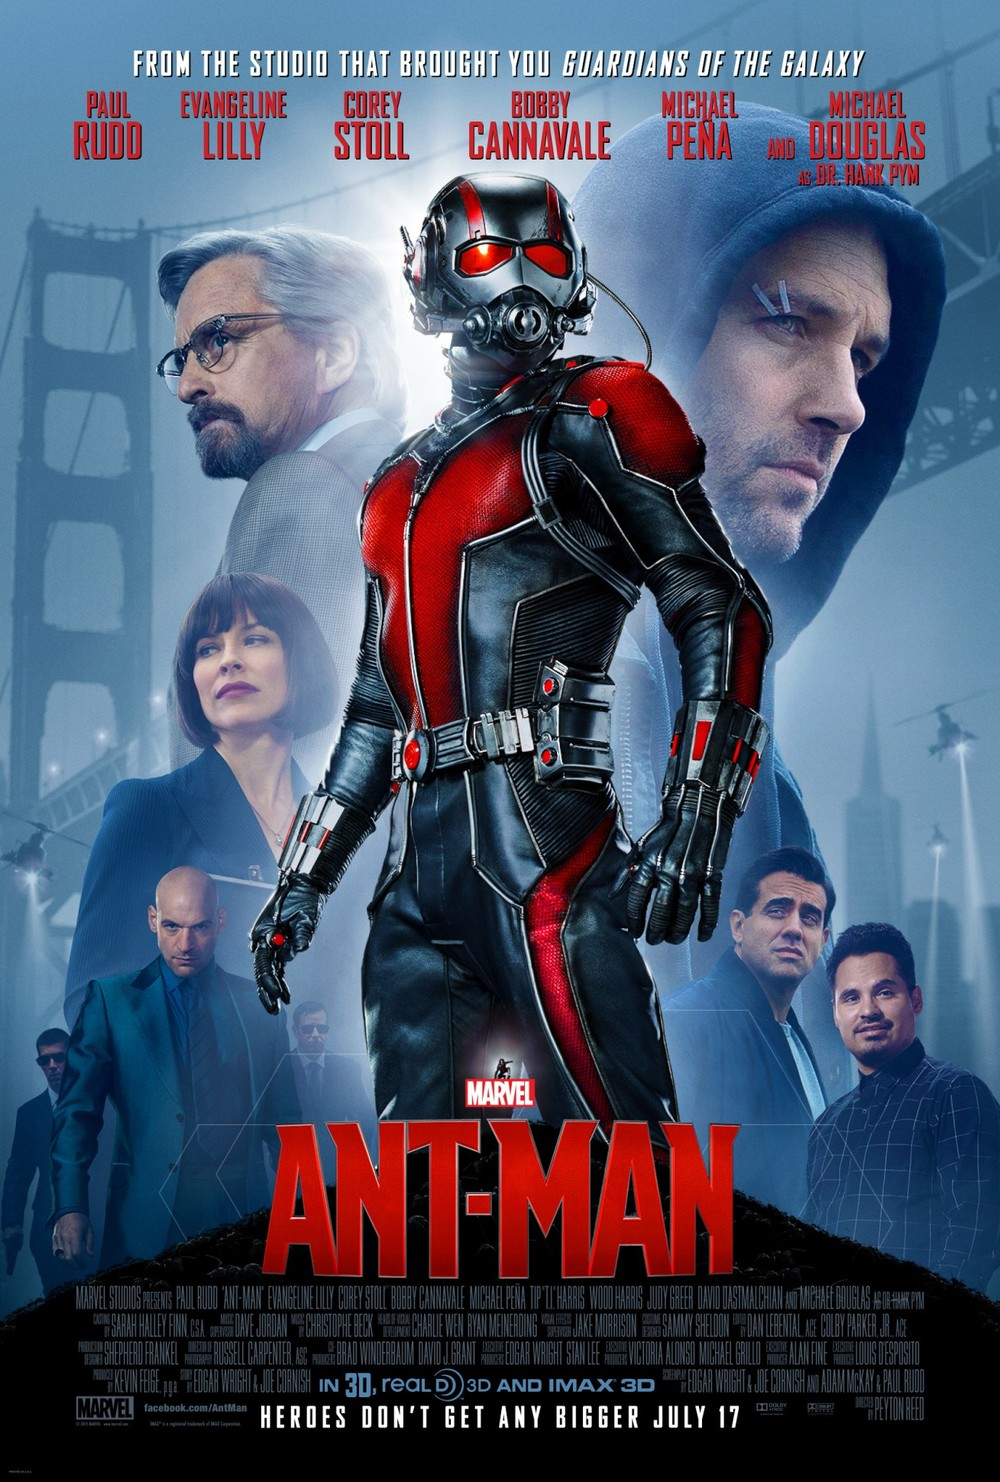 Jumping to one of the newest franchise launches, Ant-Man's first outing made a commendable $518 million, outgrossing the first Captain America and Thor movies. However, Ant-Man is still a budding franchise built on the shoulders of giants. With only one movie under it's belt, there is still some time before we know whether this franchise can stand on it's own two feet, or, should I say, it's own six appendages. (By the way, doesn't it look like they definitely copied this poster from Captain America: The First Avenger? Check it out, below.)